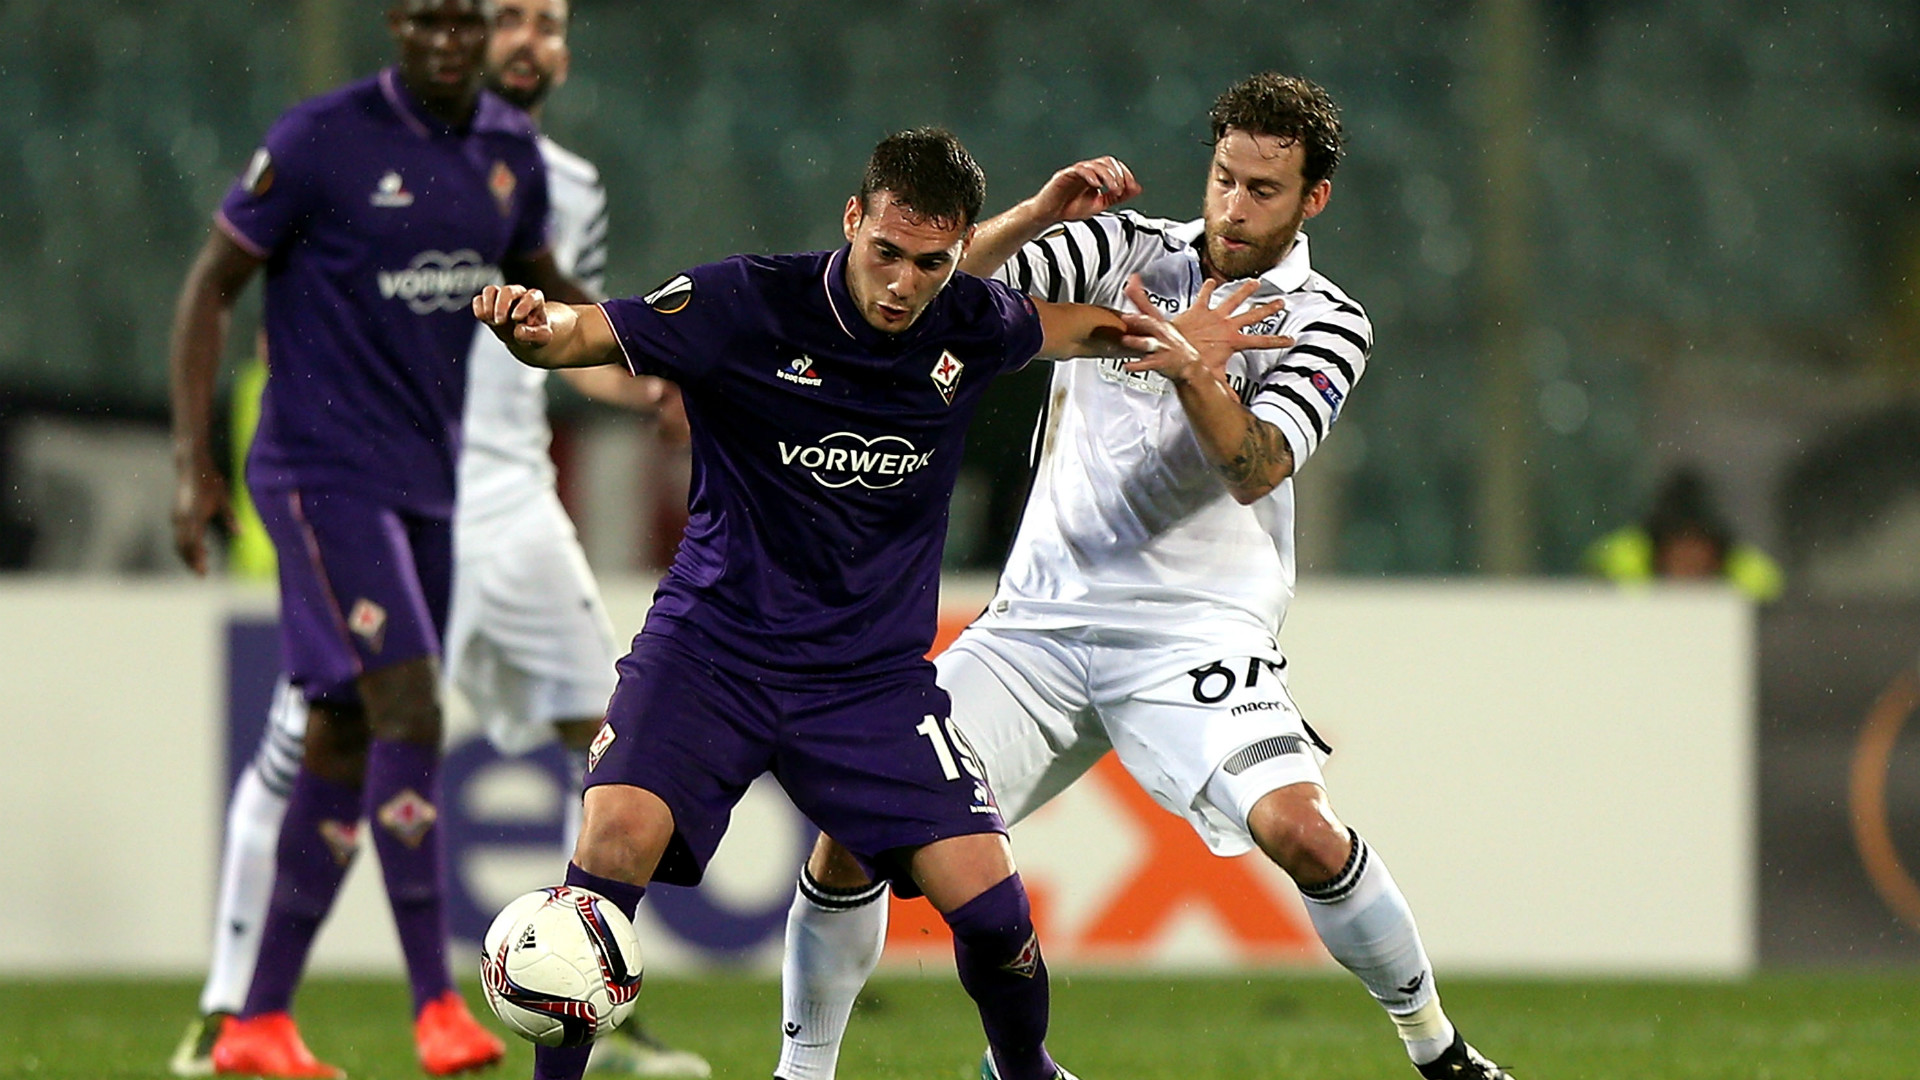 Highlights Fiorentina-Paok Salonicco 2-3, video gol Europa League 24 Novembre 2016